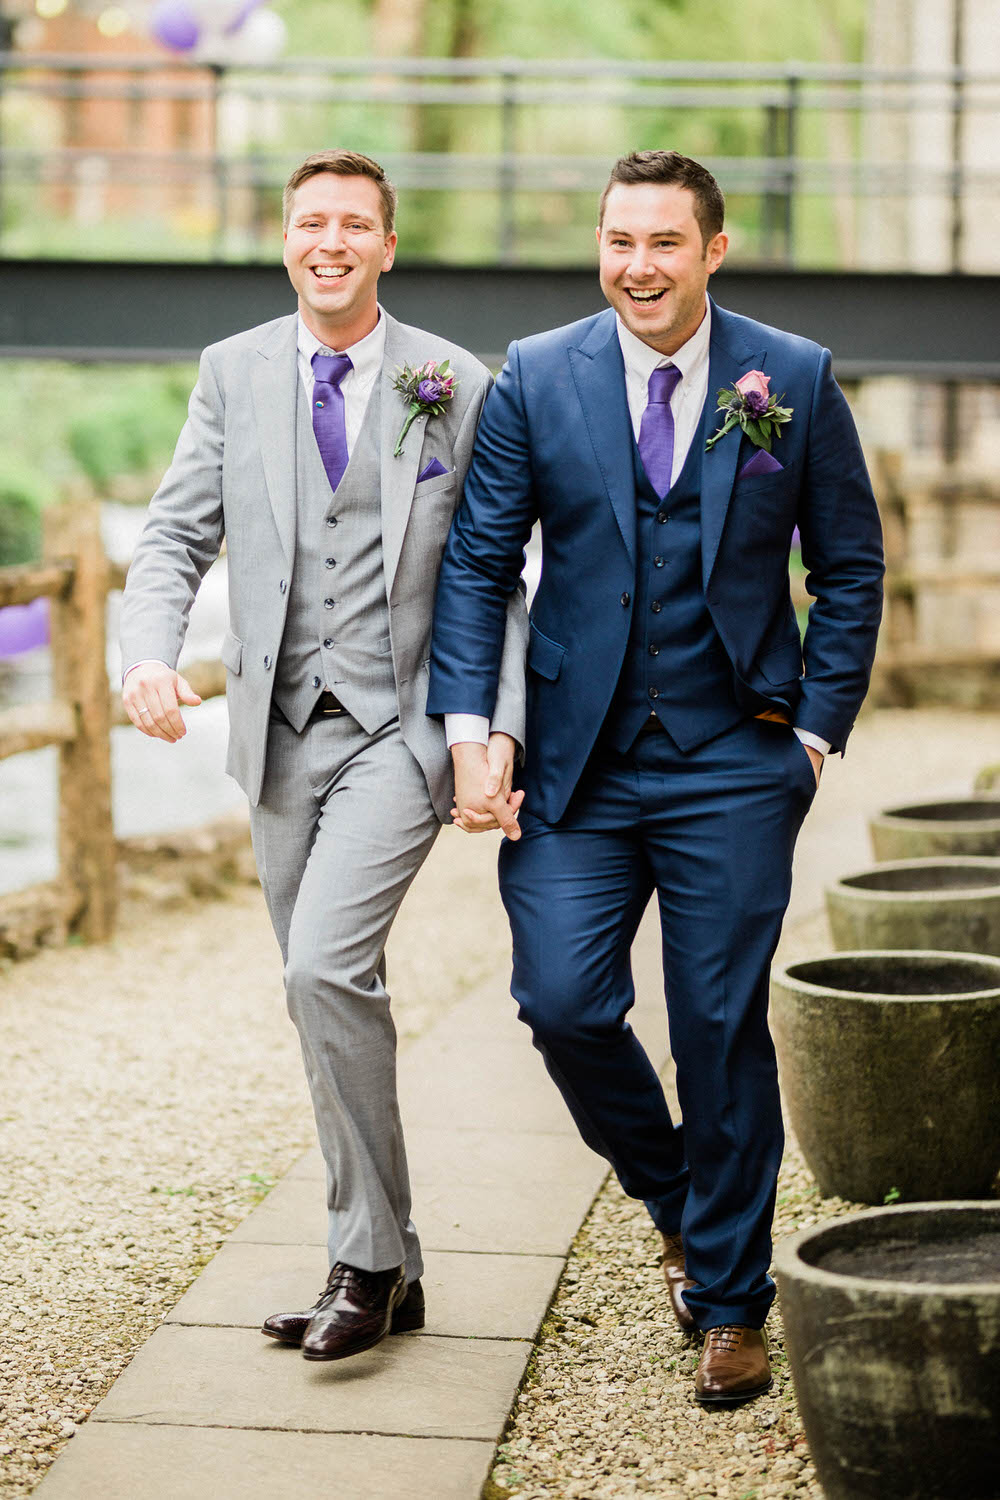 Special-Day-Photography-Egypt-Mills-Hotel-Stroud-A-same-sex-wedding-in-the-summer-Gay-wedding-photography-Stroud.jpg